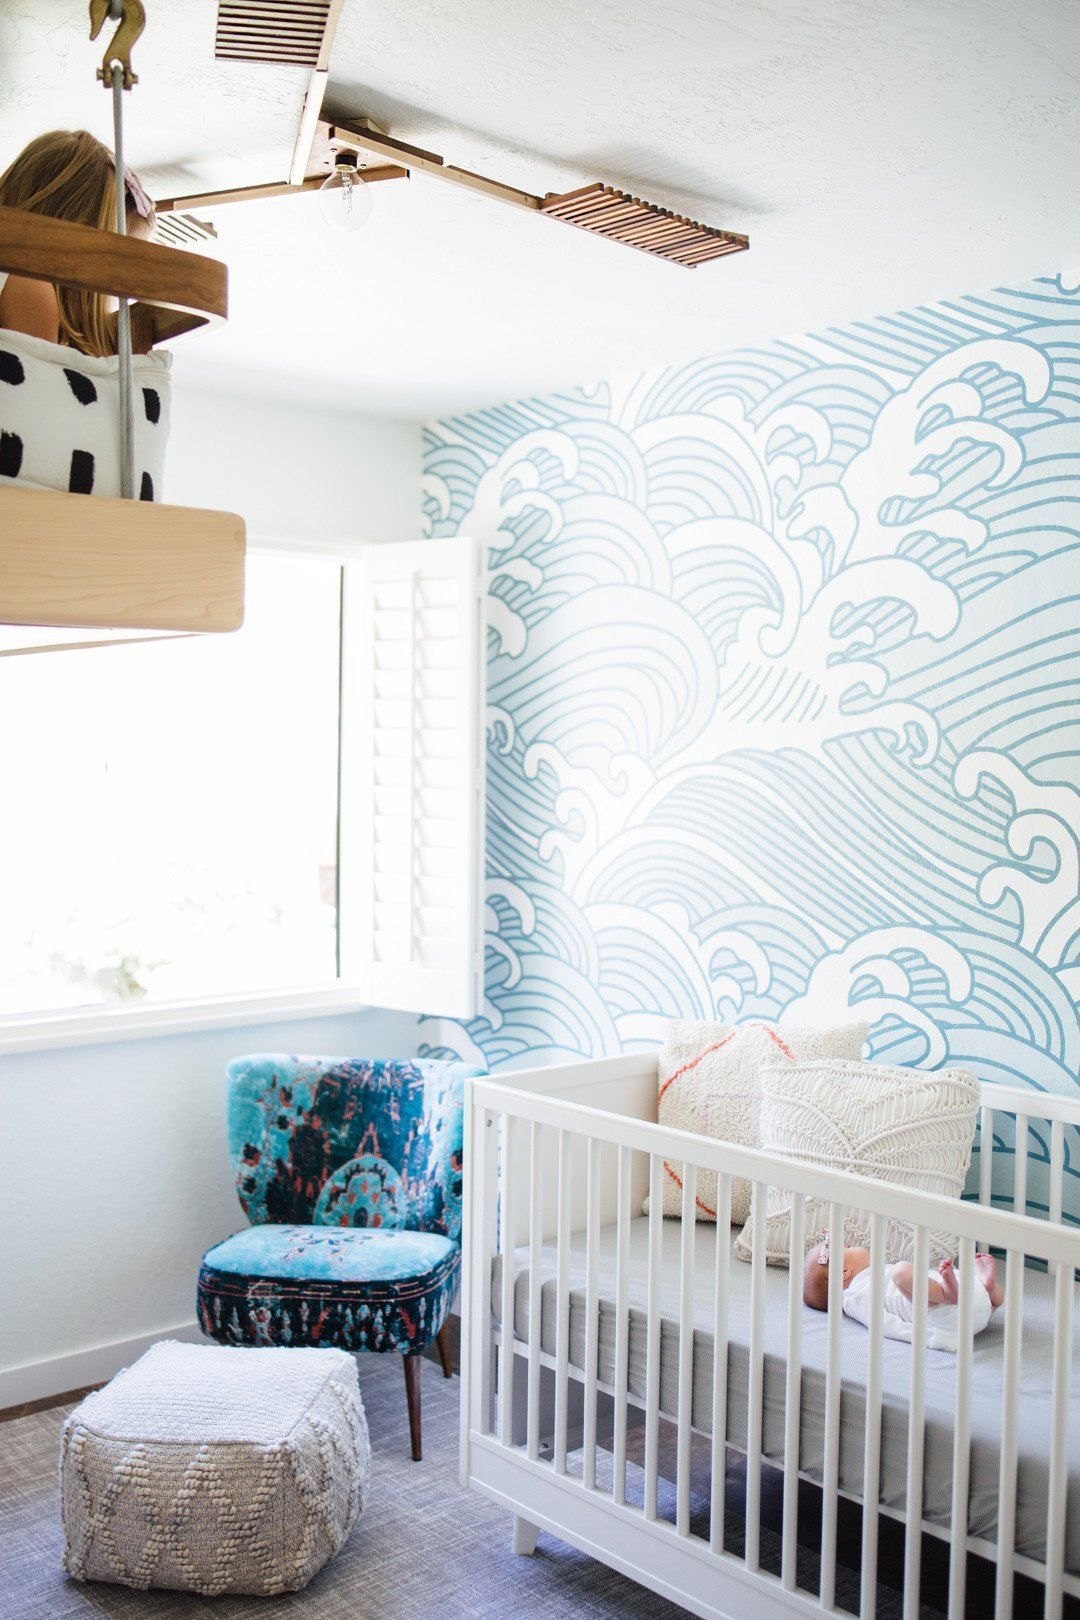 nurser, wooden floor, white rug, white wall, patterned wall, white crib, wooden floating shelves